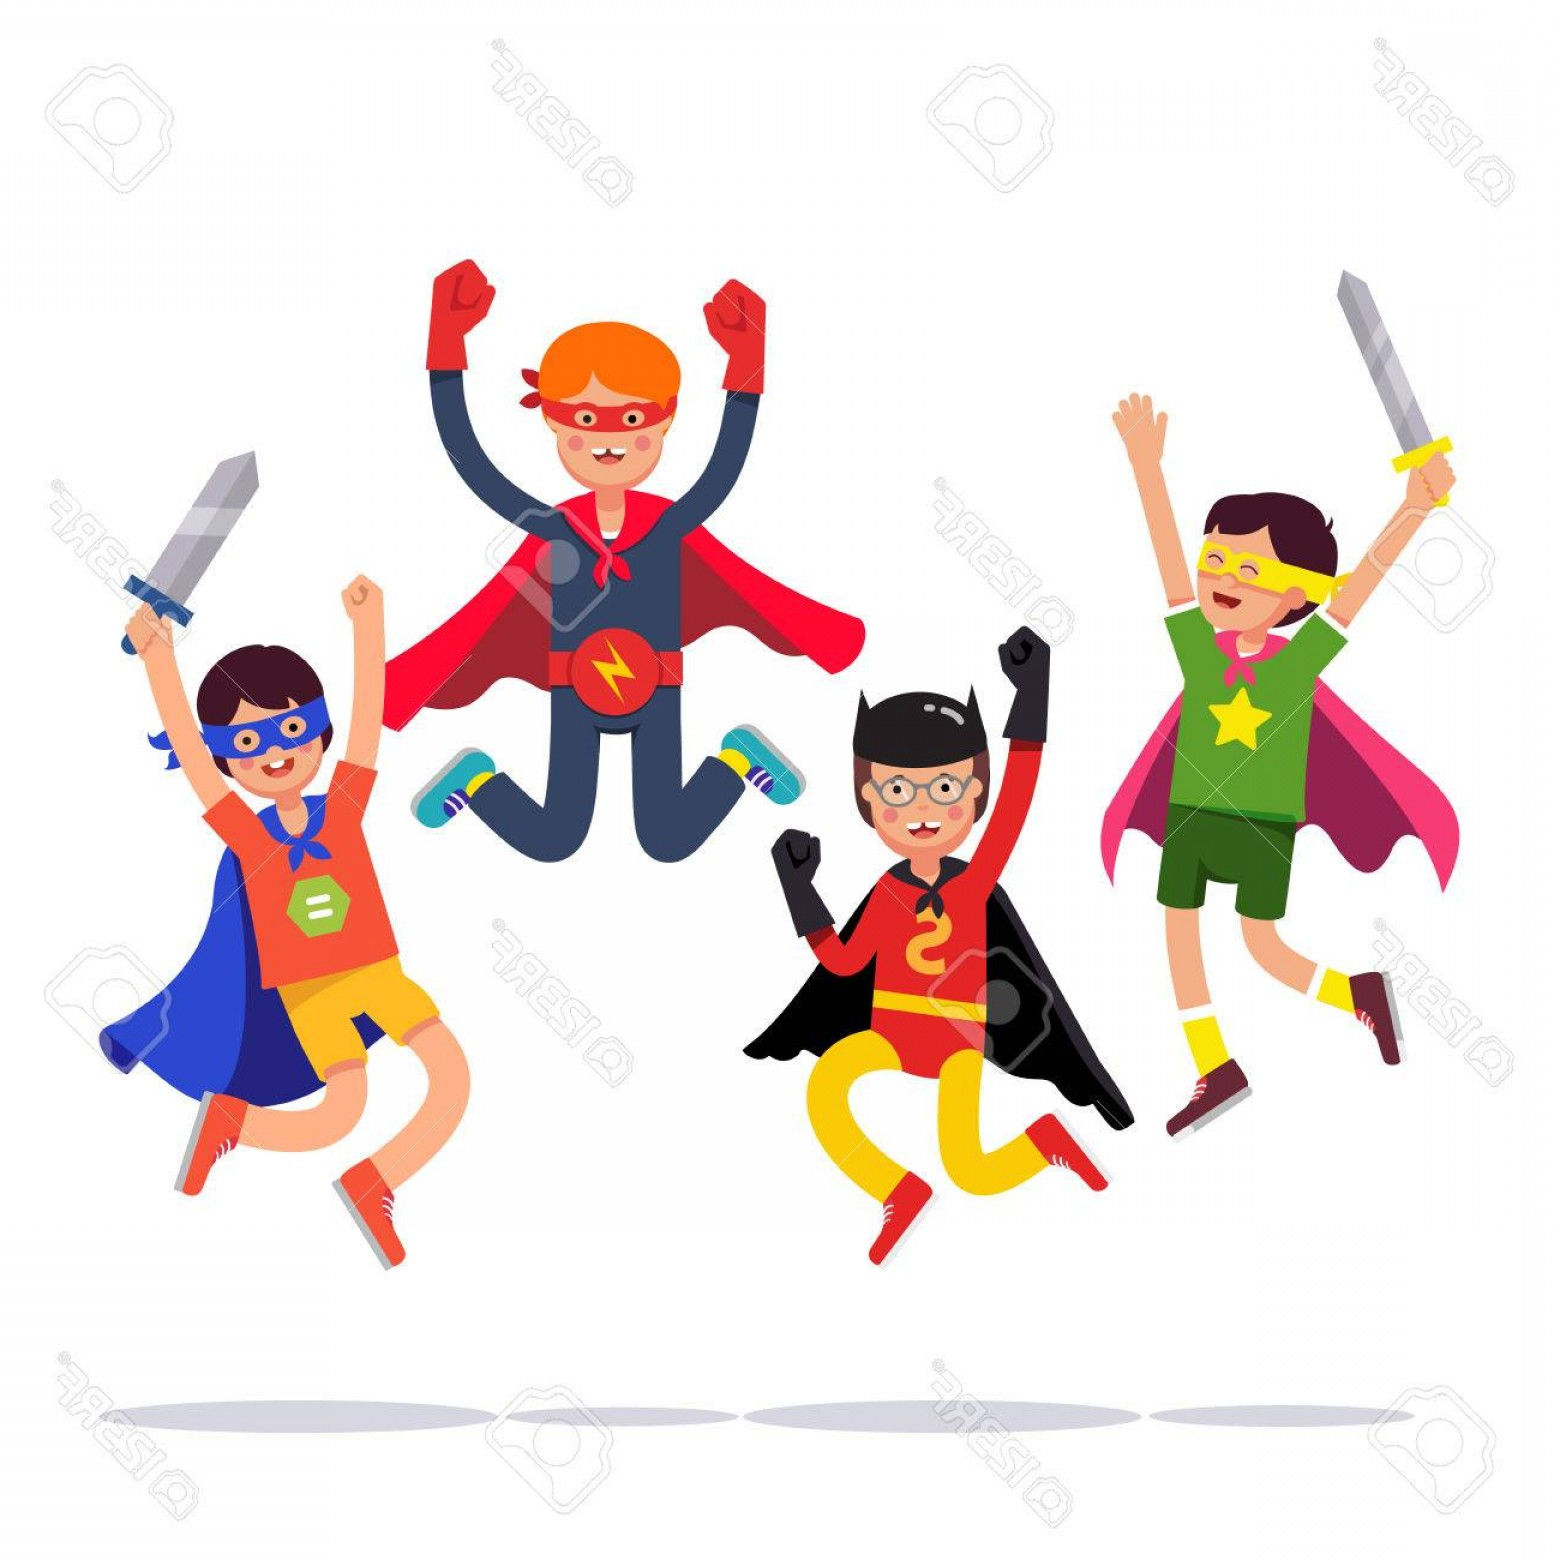 Vector Cosplay: Photostock Vector Team Of Young Superhero Boys Kids Playing Cosplay With Improvised Costumes Capes And Masks Pretendin